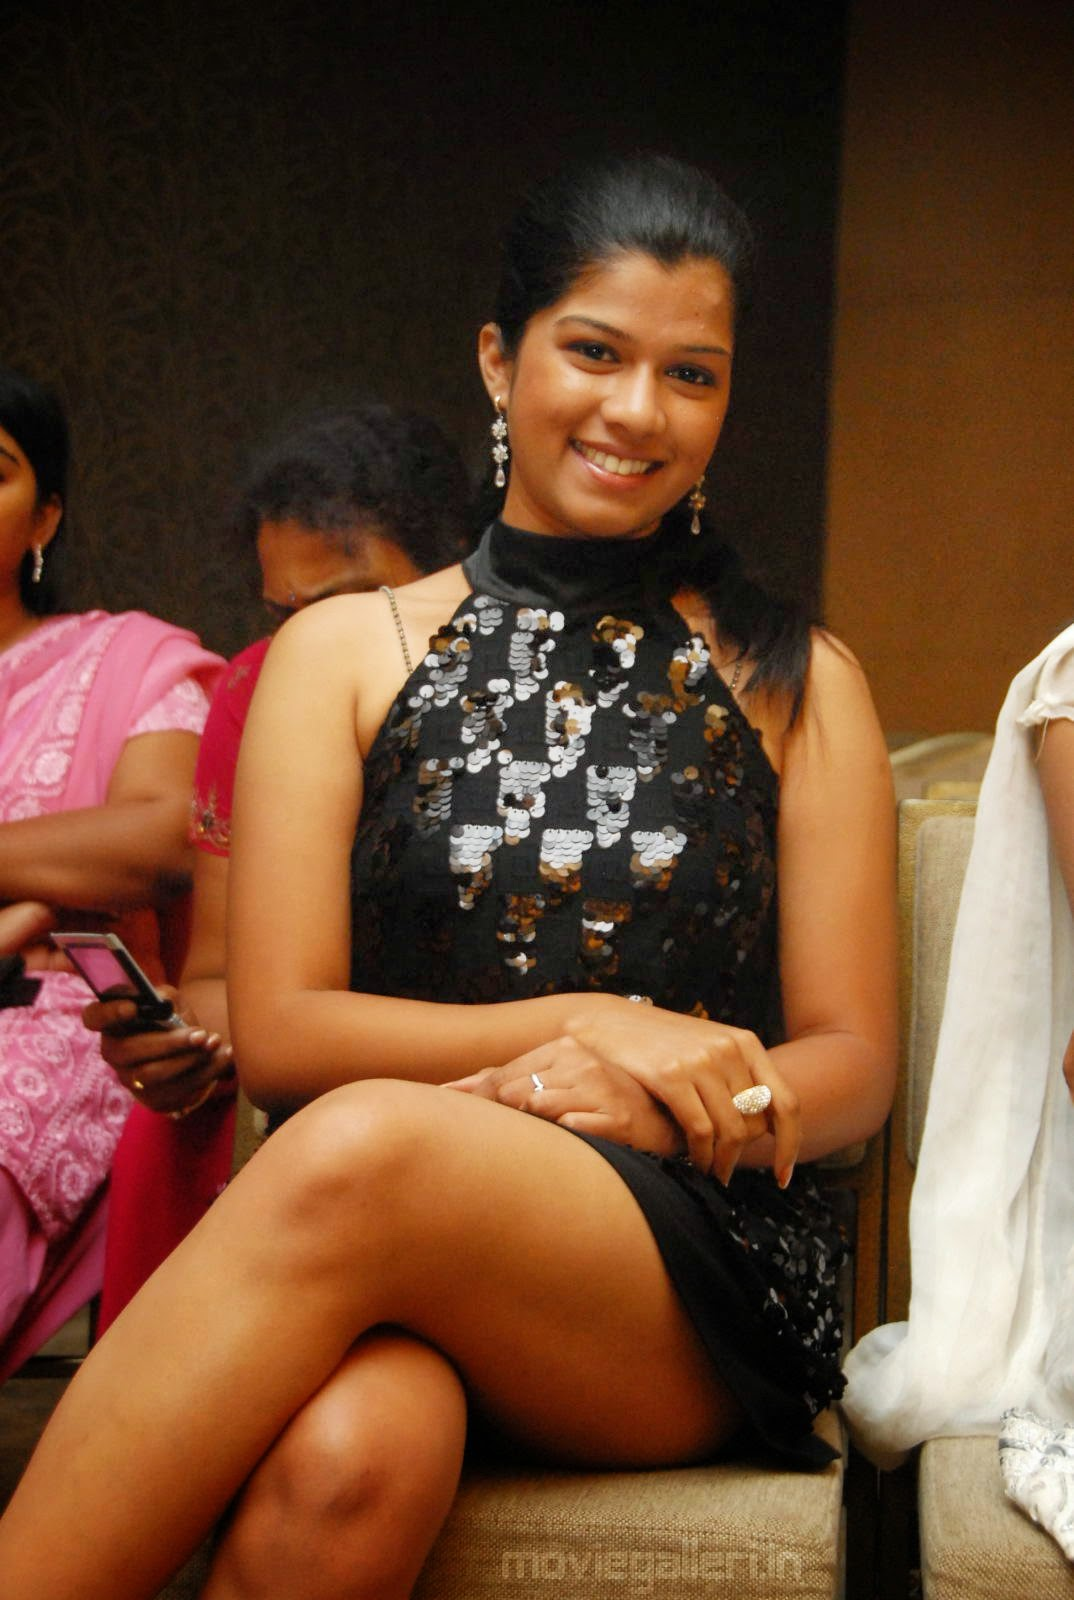 local indian girls hot thighs photos